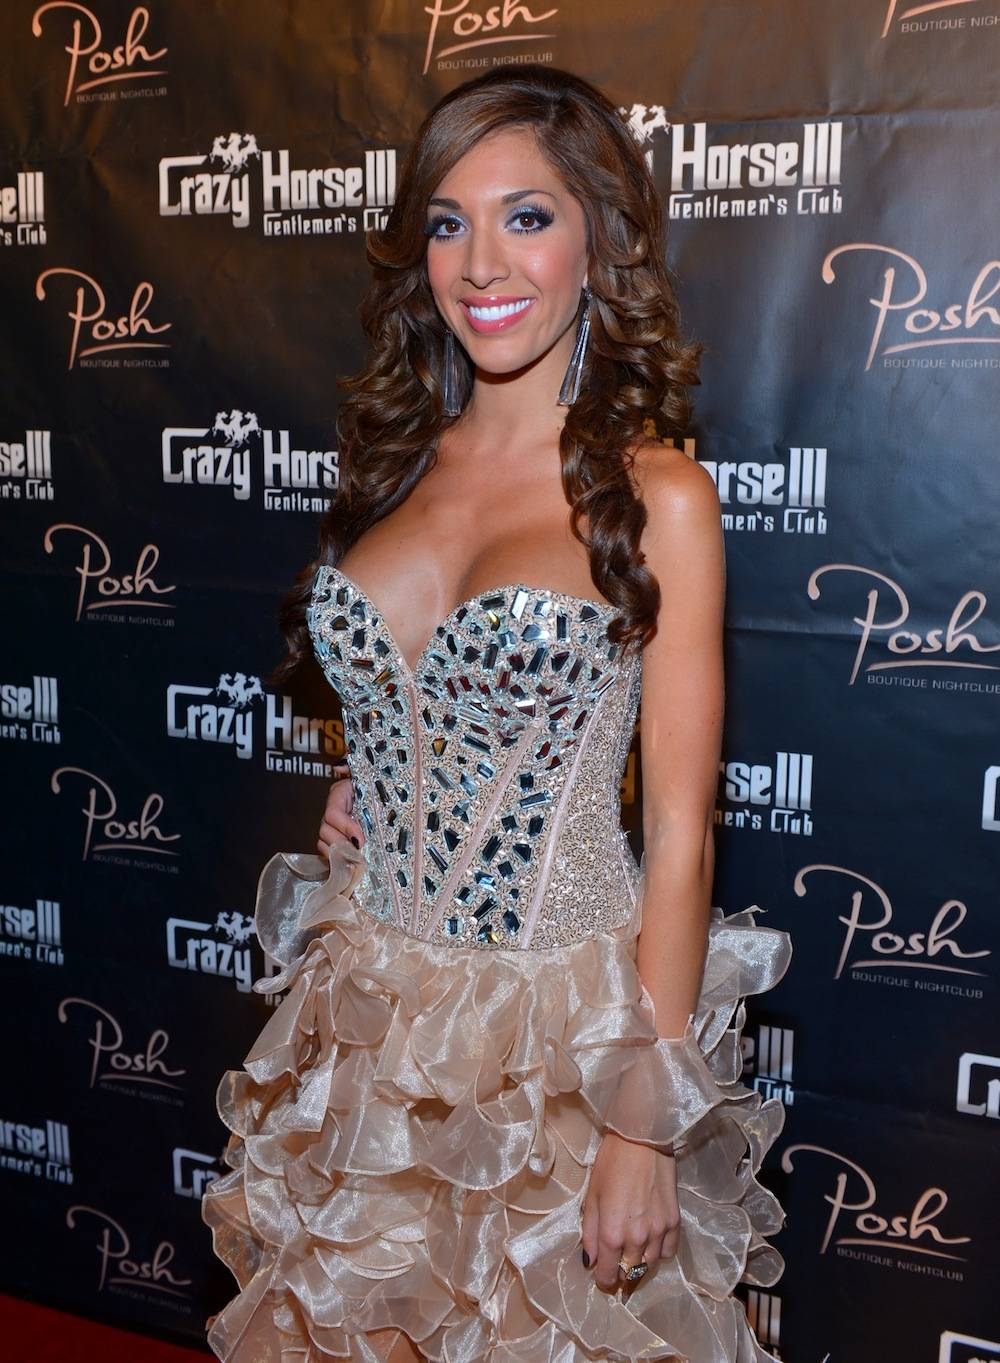 Farrah Abraham on the red carpet at Crazy Horse III. Photos: Bryan Steffy/WireImage